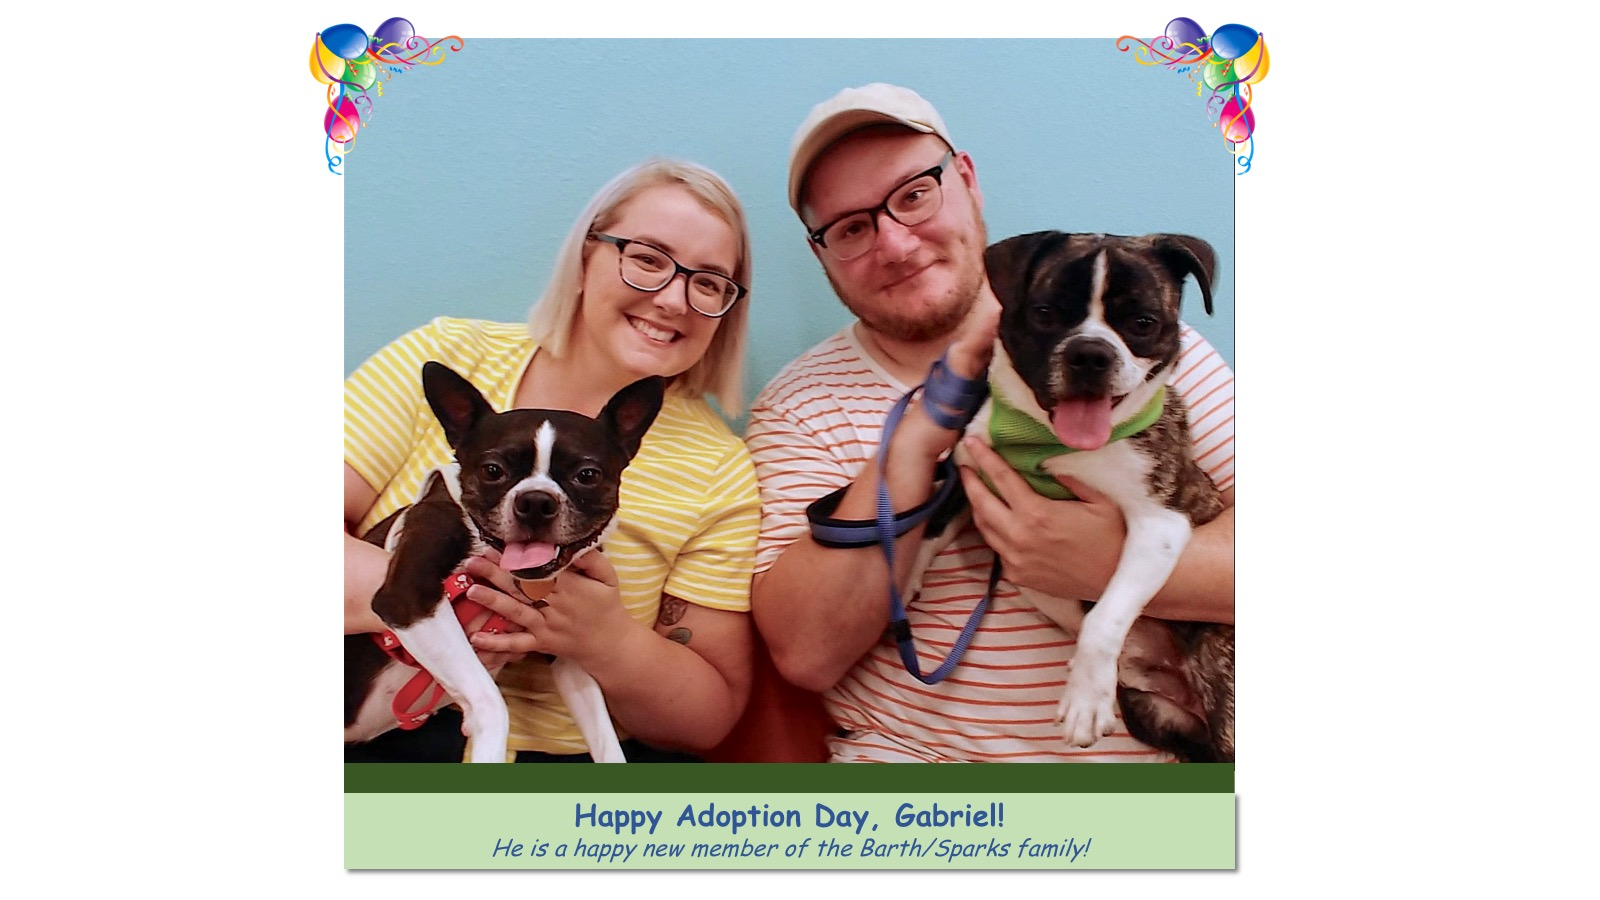 Gabriel_Adoption_Photo_2018.jpg